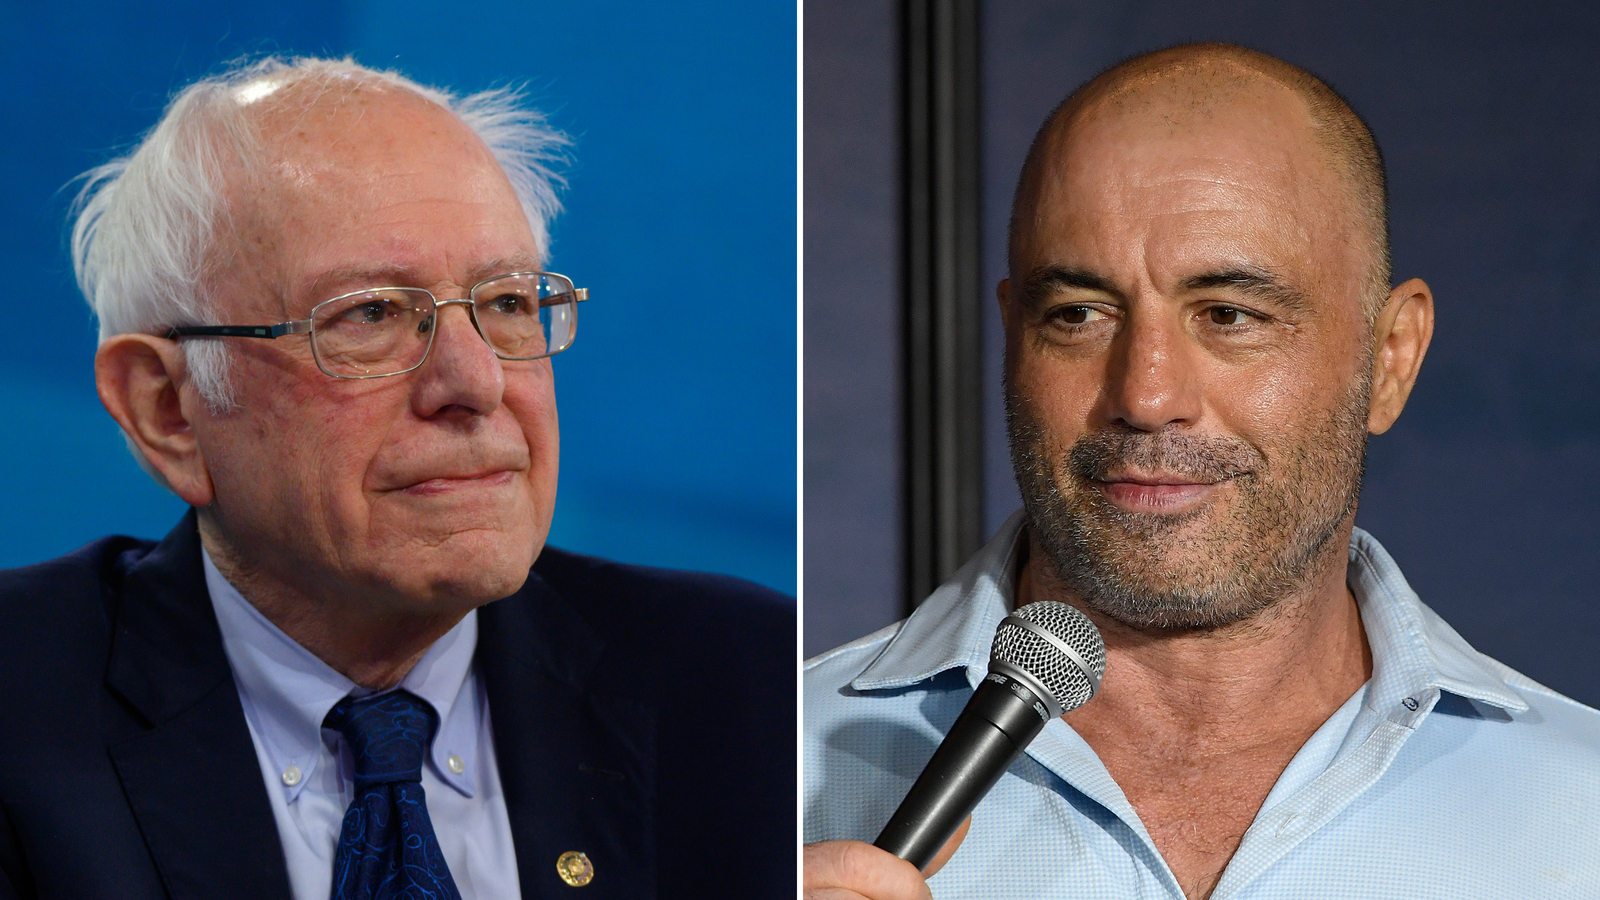 Bernie Sanders draws criticism for touting Joe Rogan endorsement